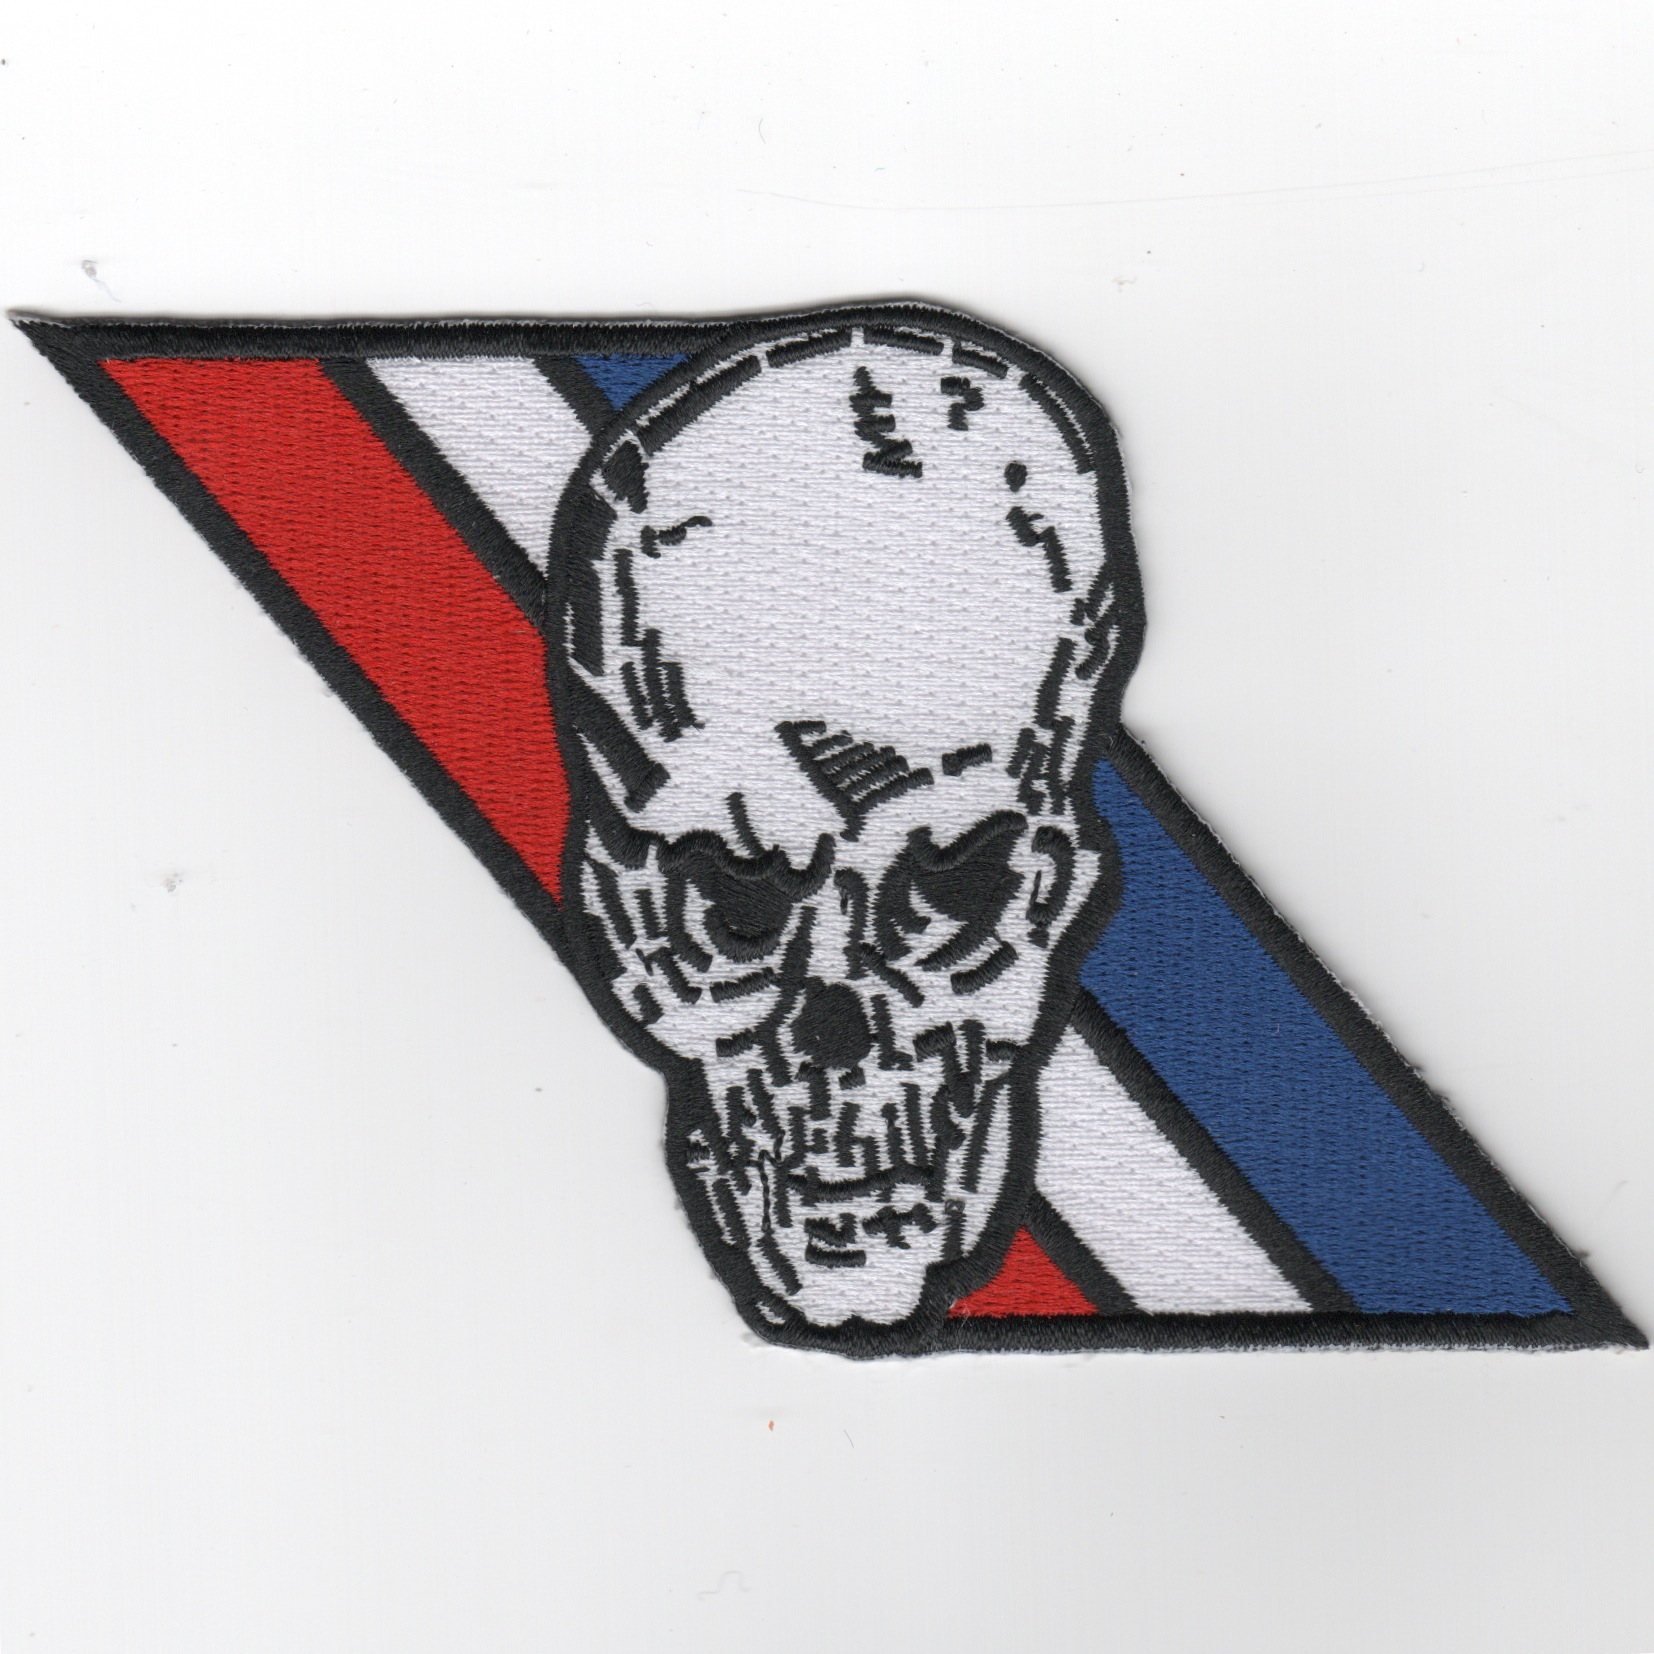 VF-2 'Skull' (R/W/B Stripes) Patch